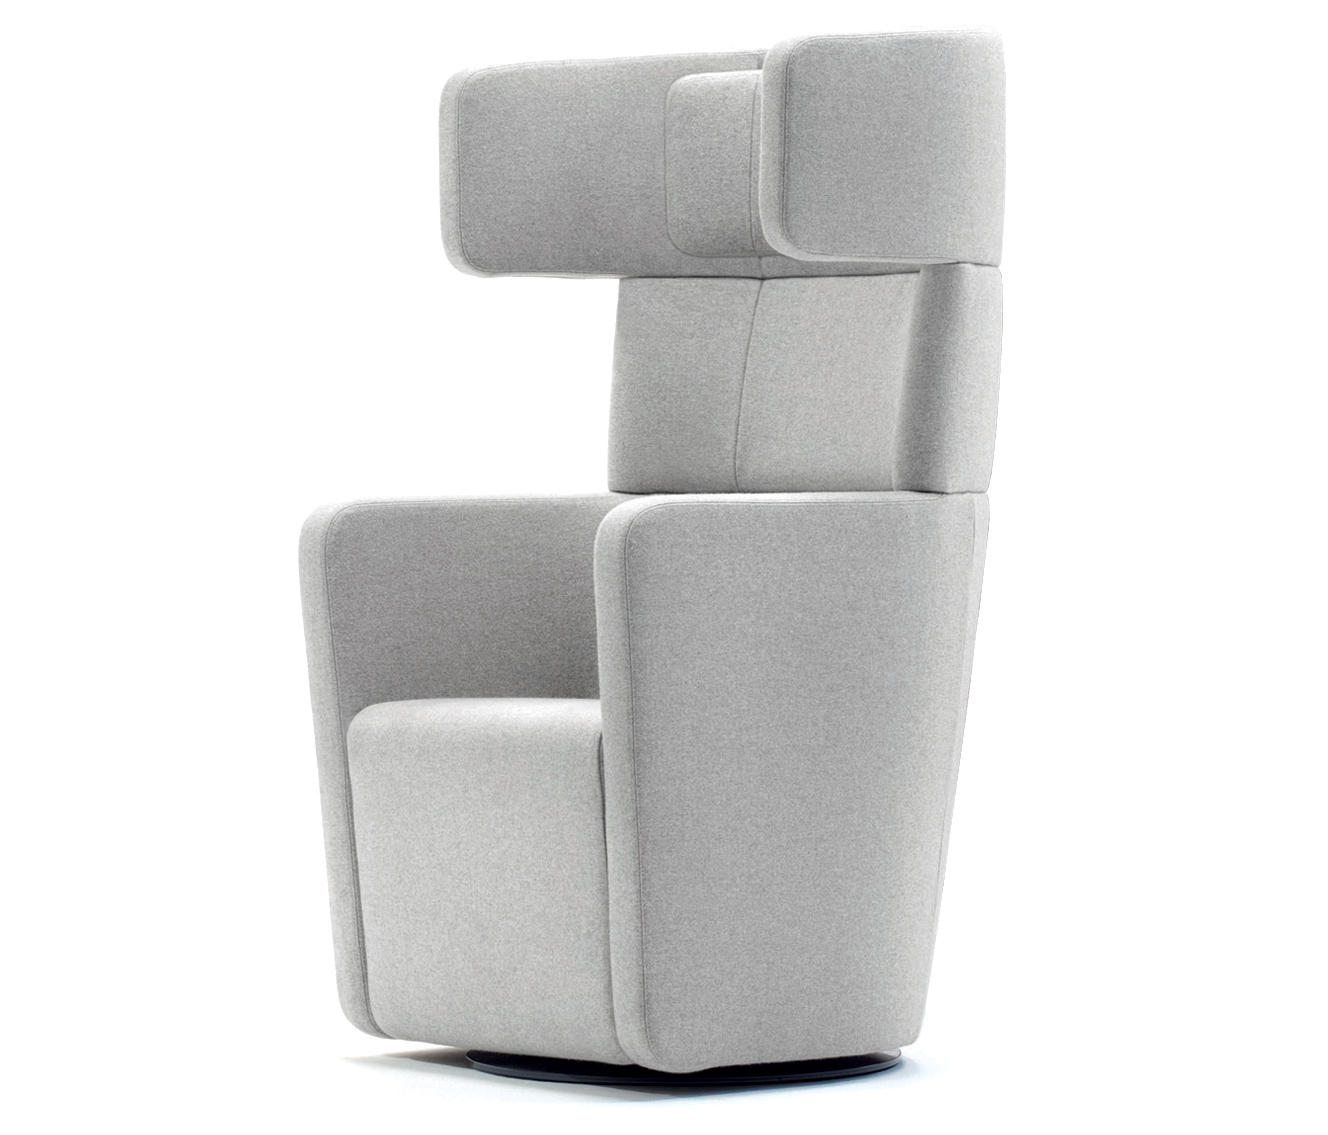 high back wing chairs modern chair design parcs - armchairs from bene | architonic